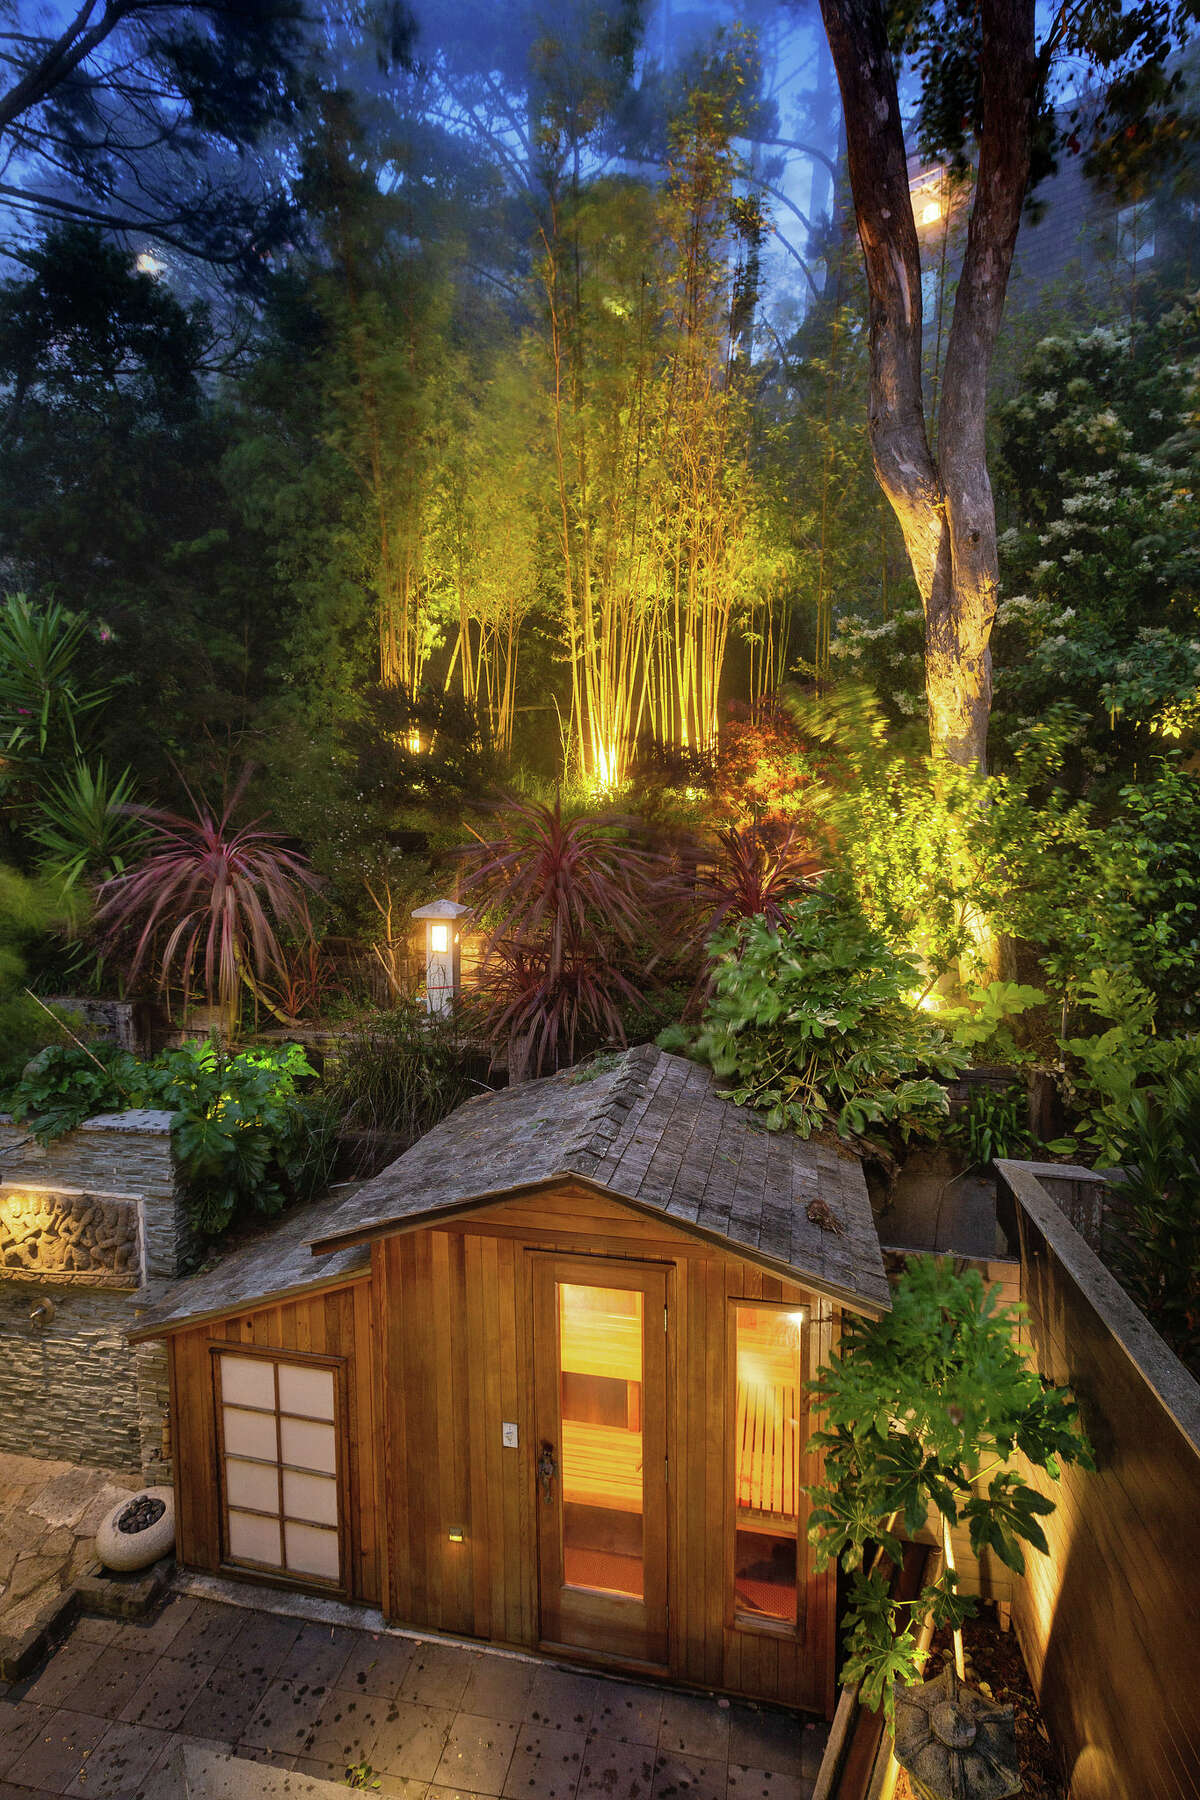 Not your everyday townhouse backyard. Here we see the sauna and layered foliage lit up at dusk.